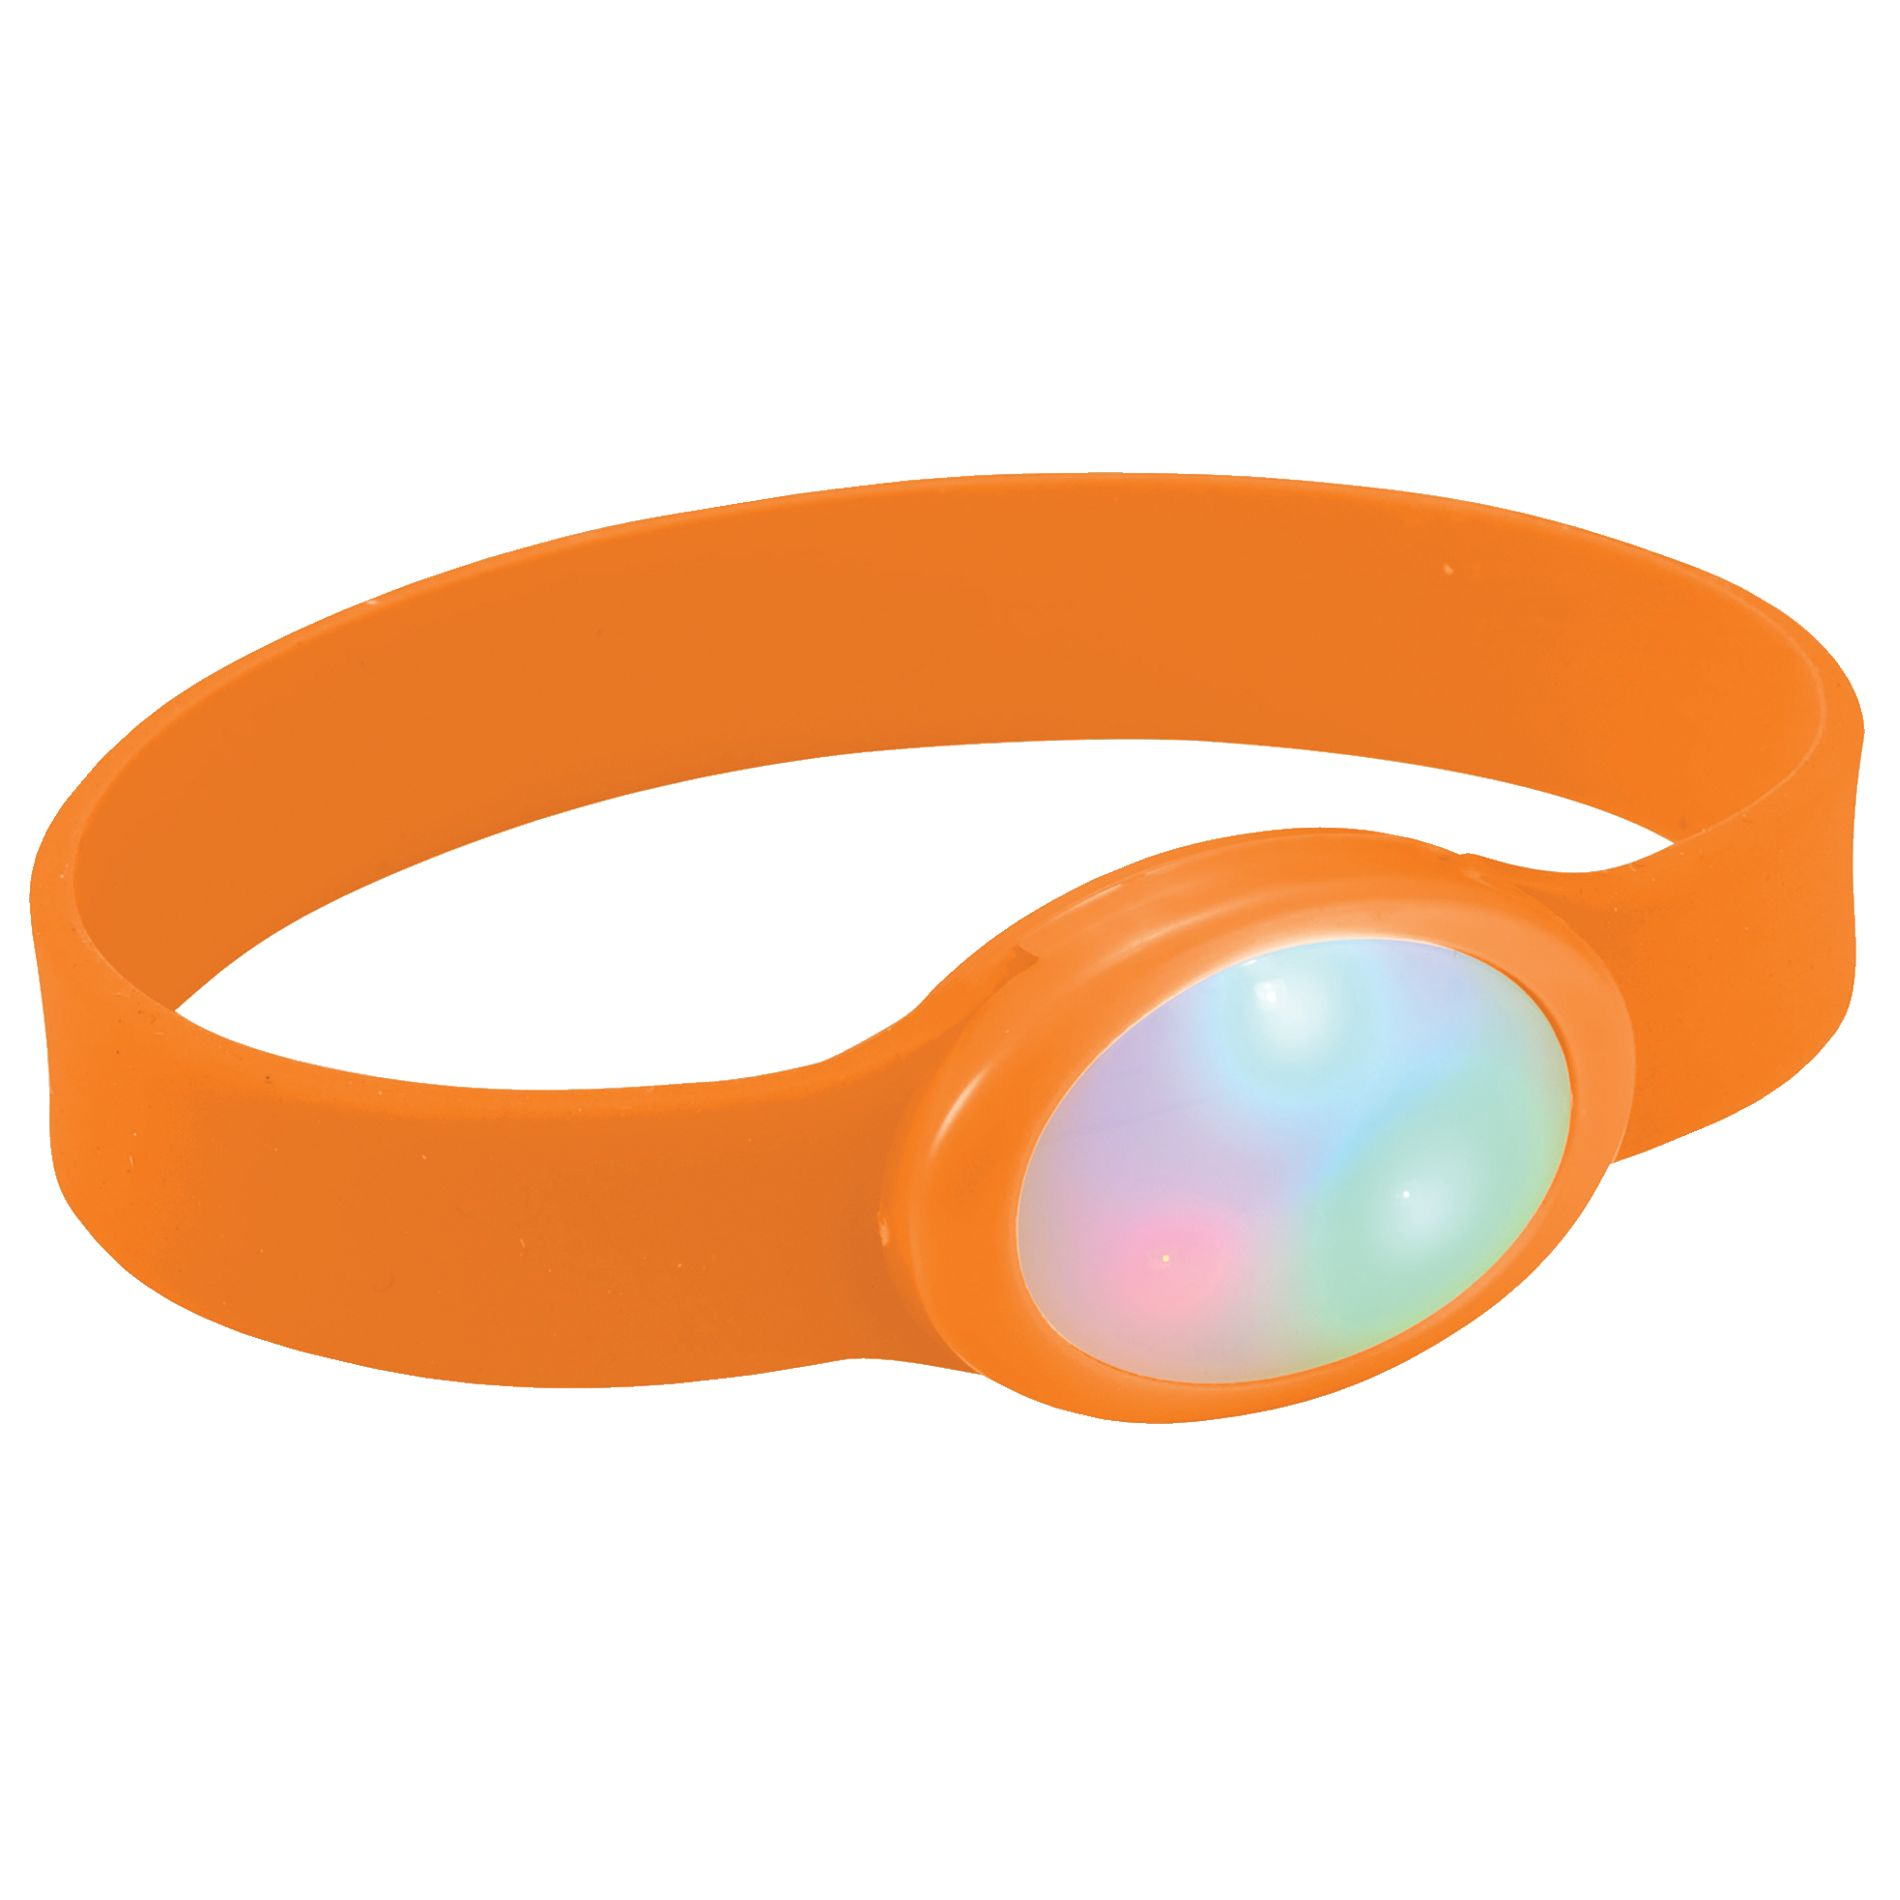 BRAZALETE MULTICOLOR DE LED FLASH   NR